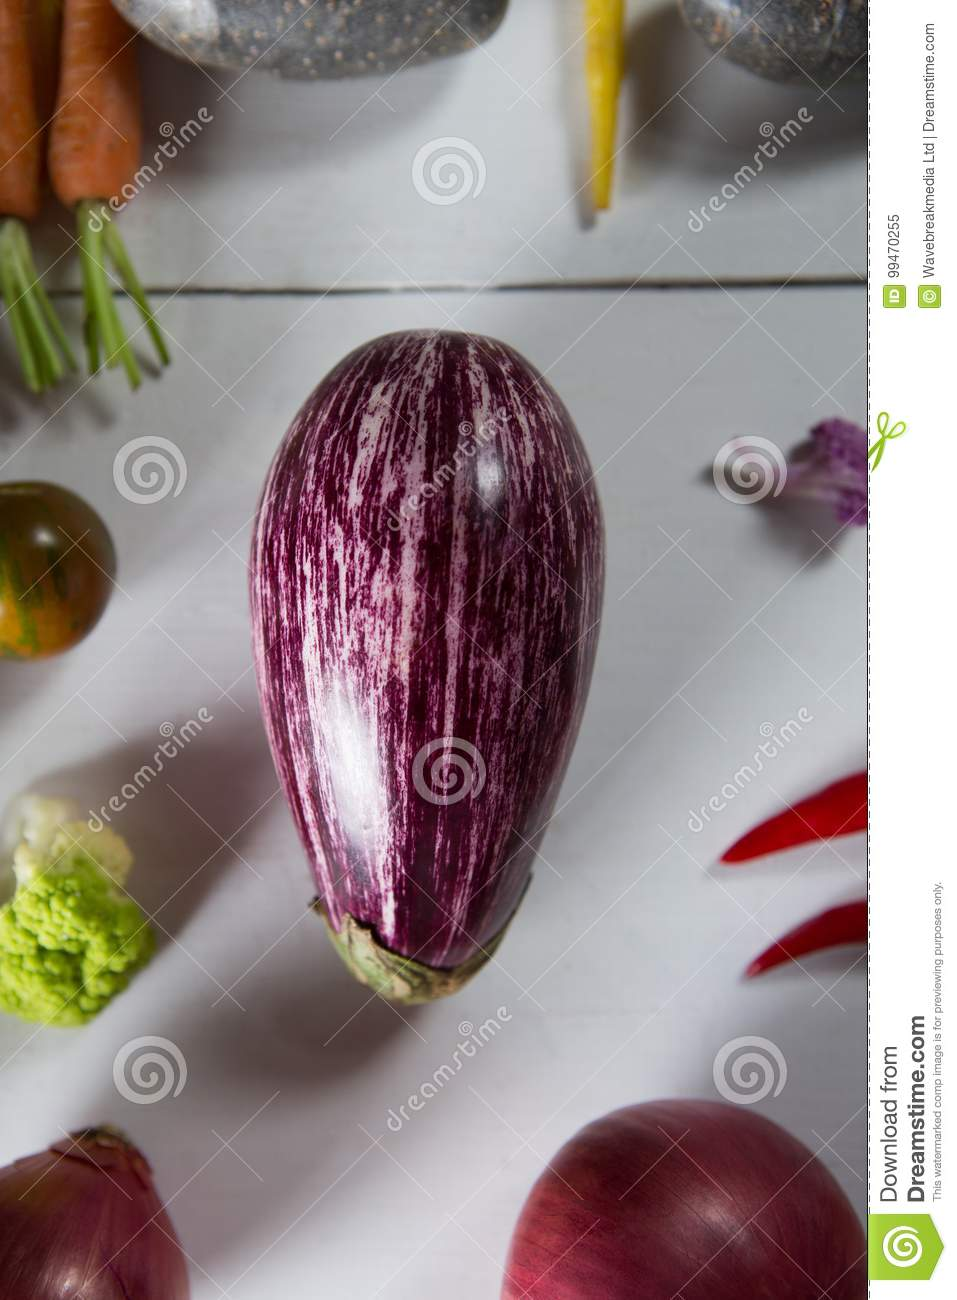 a3a6cdc06e73 Close-up Of Eggplant With Olive And Carrots Stock Image - Image of ...